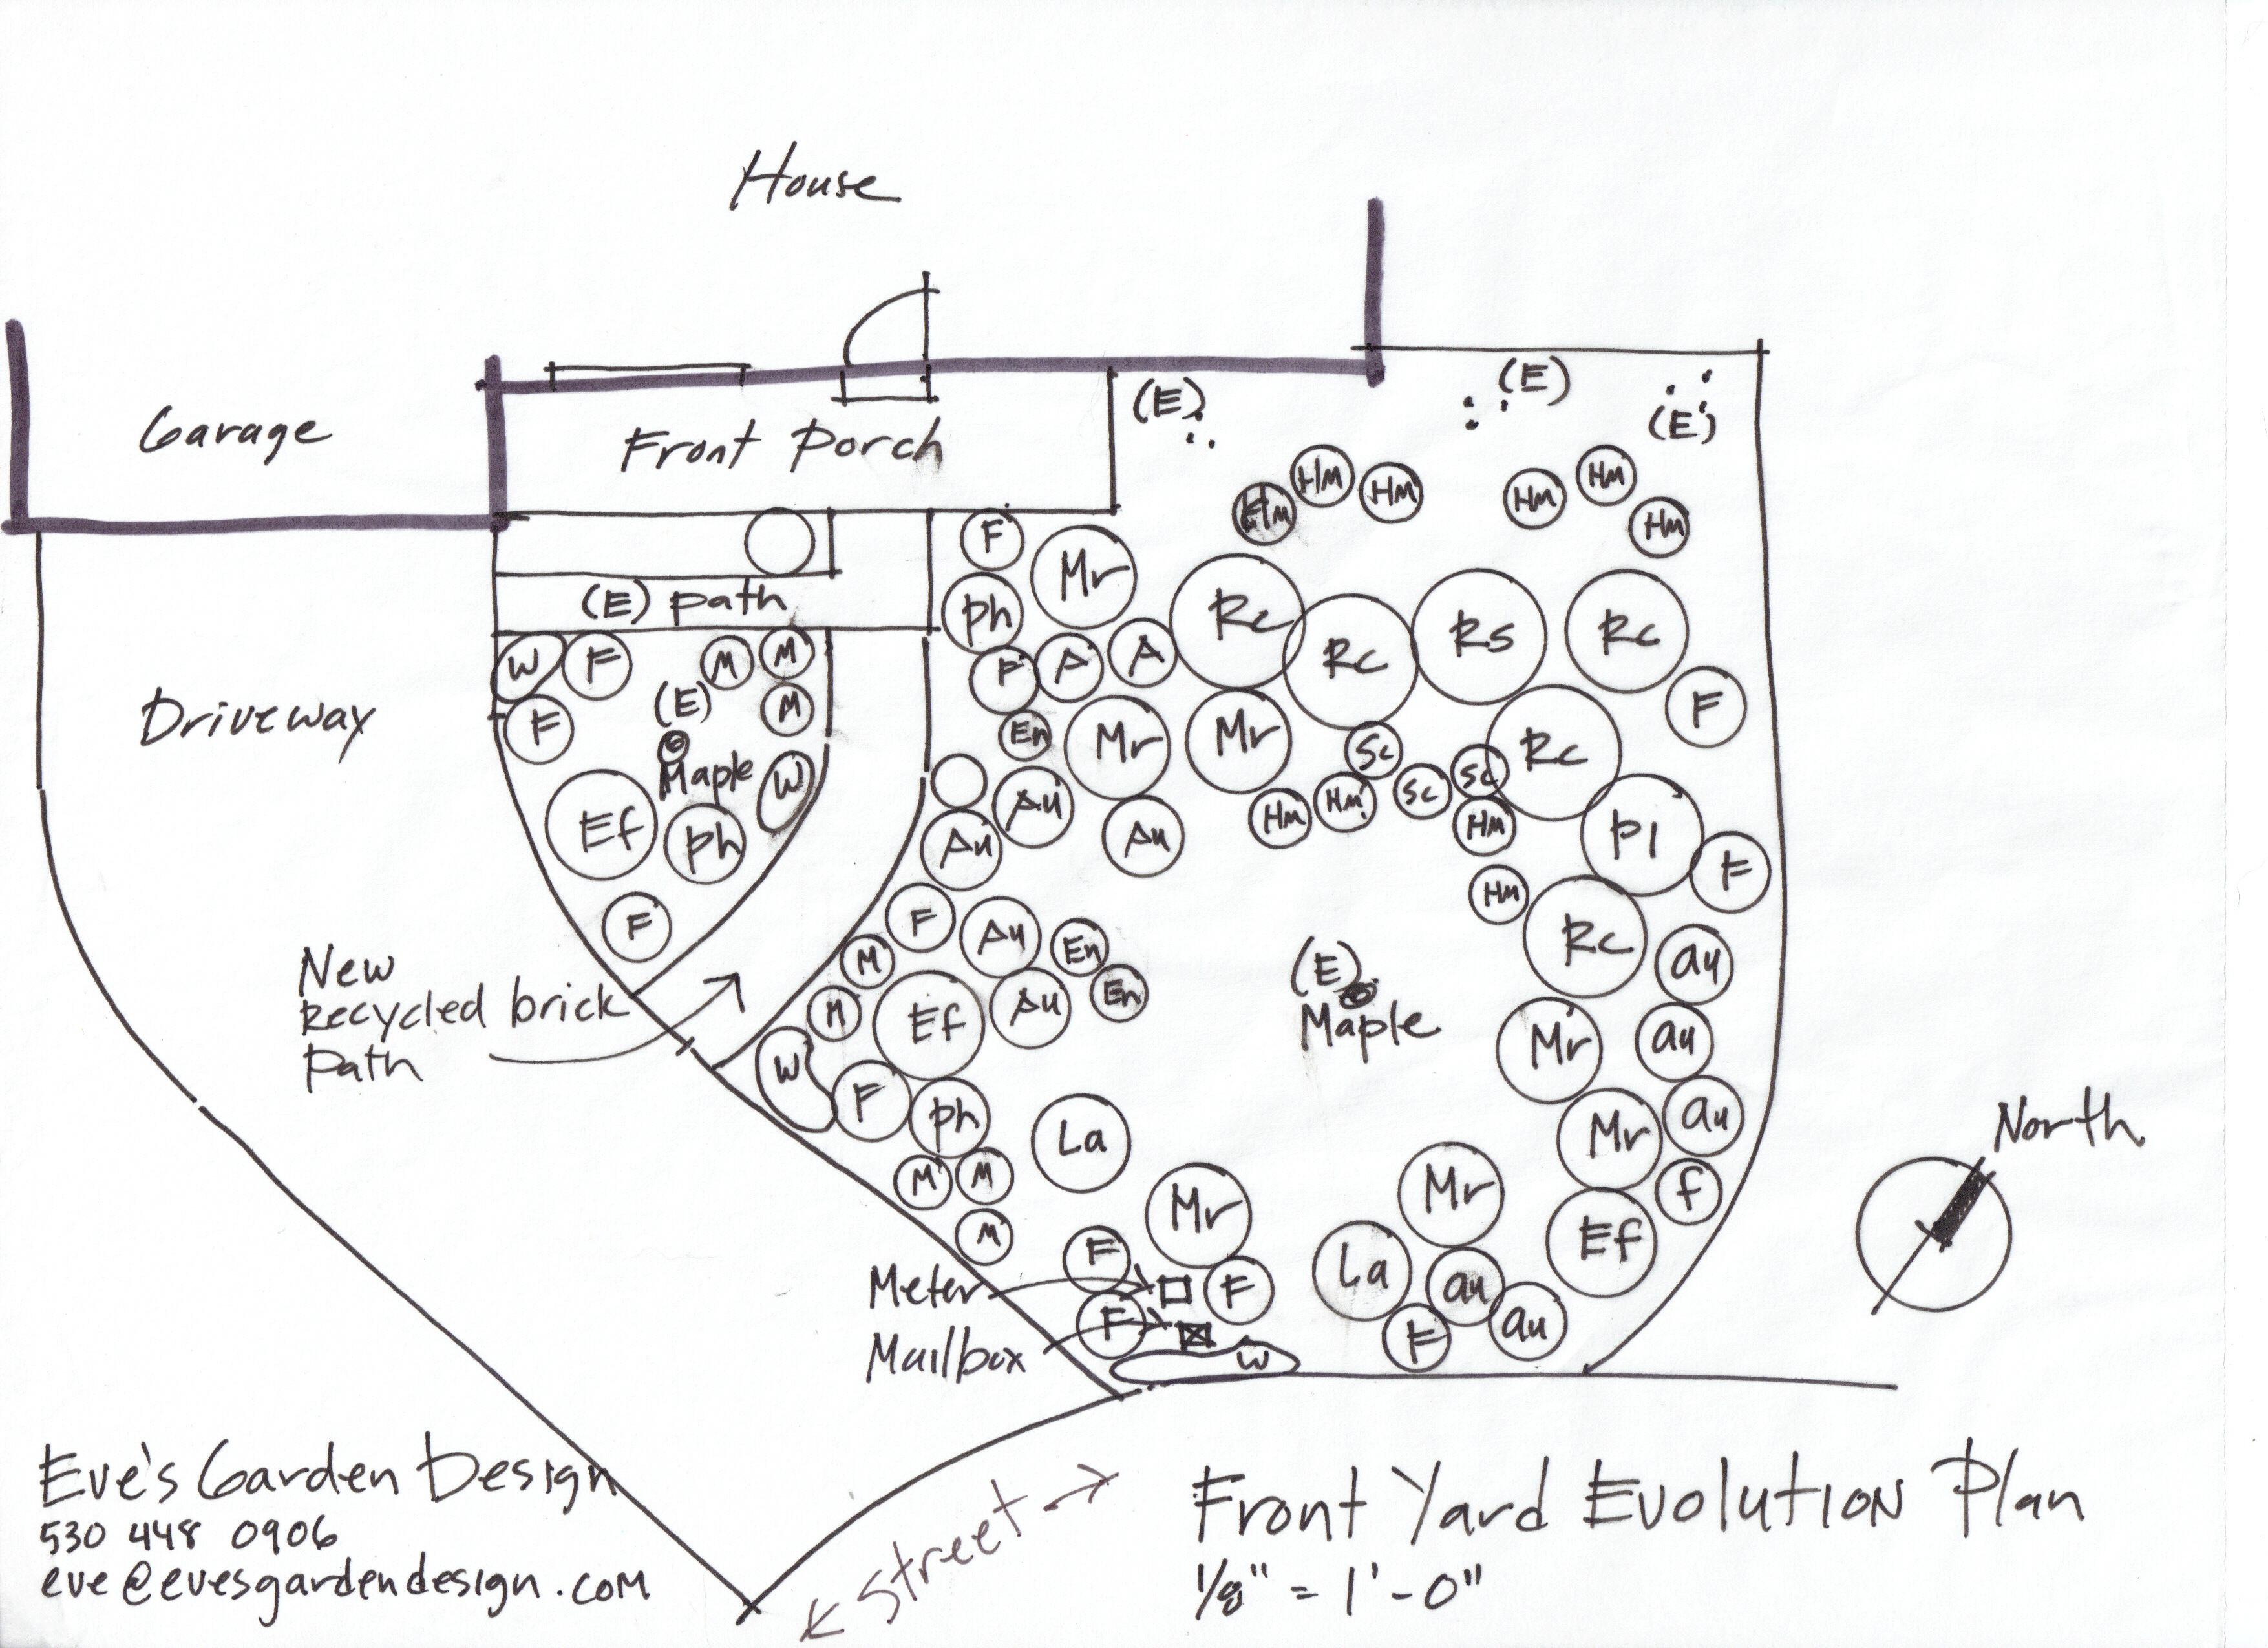 eve's garden design created this front yard evolution plan